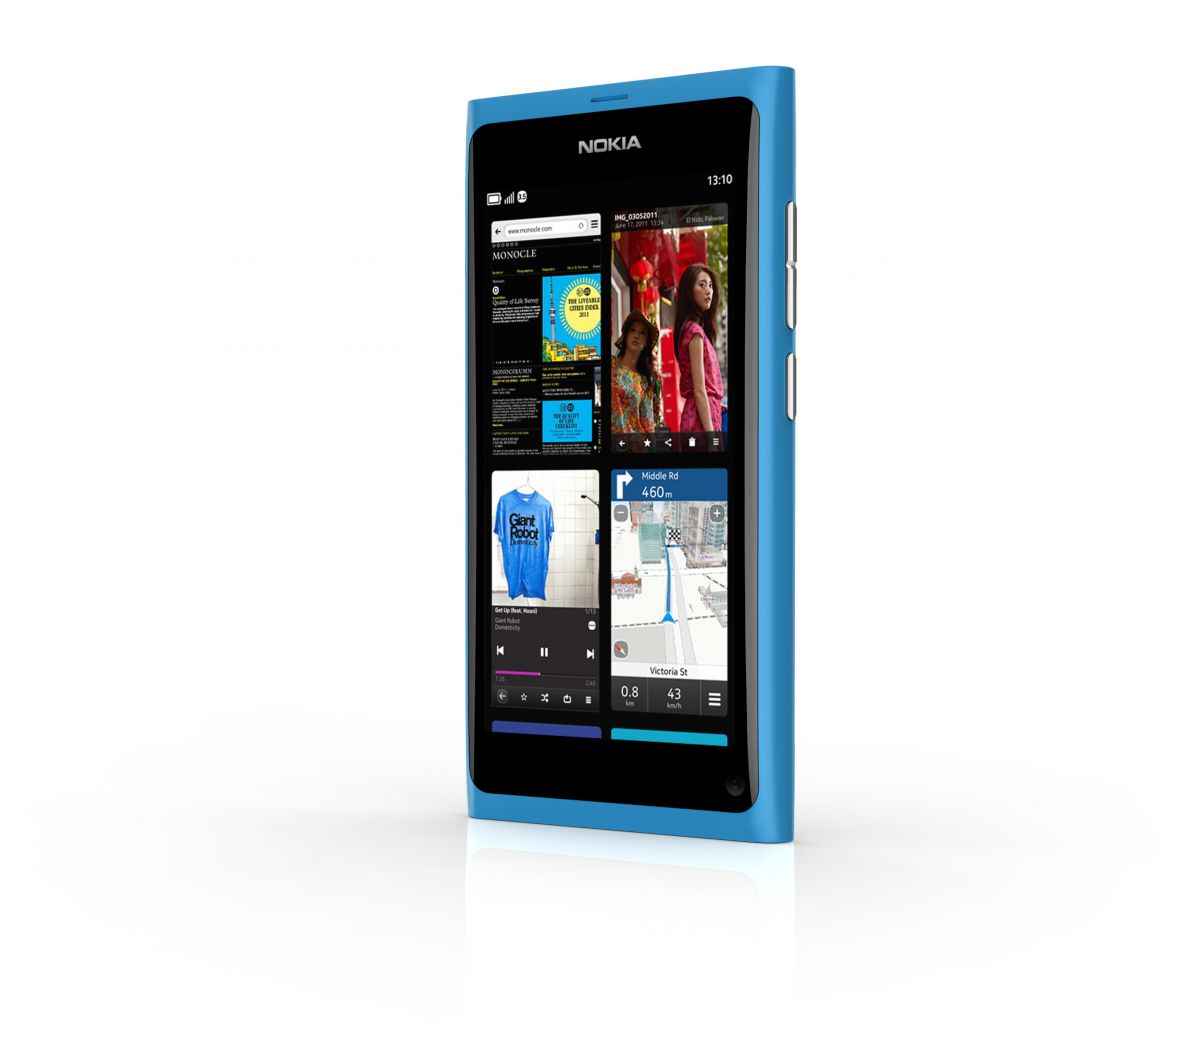 Nokia N9 - Another View of the Task Switcher